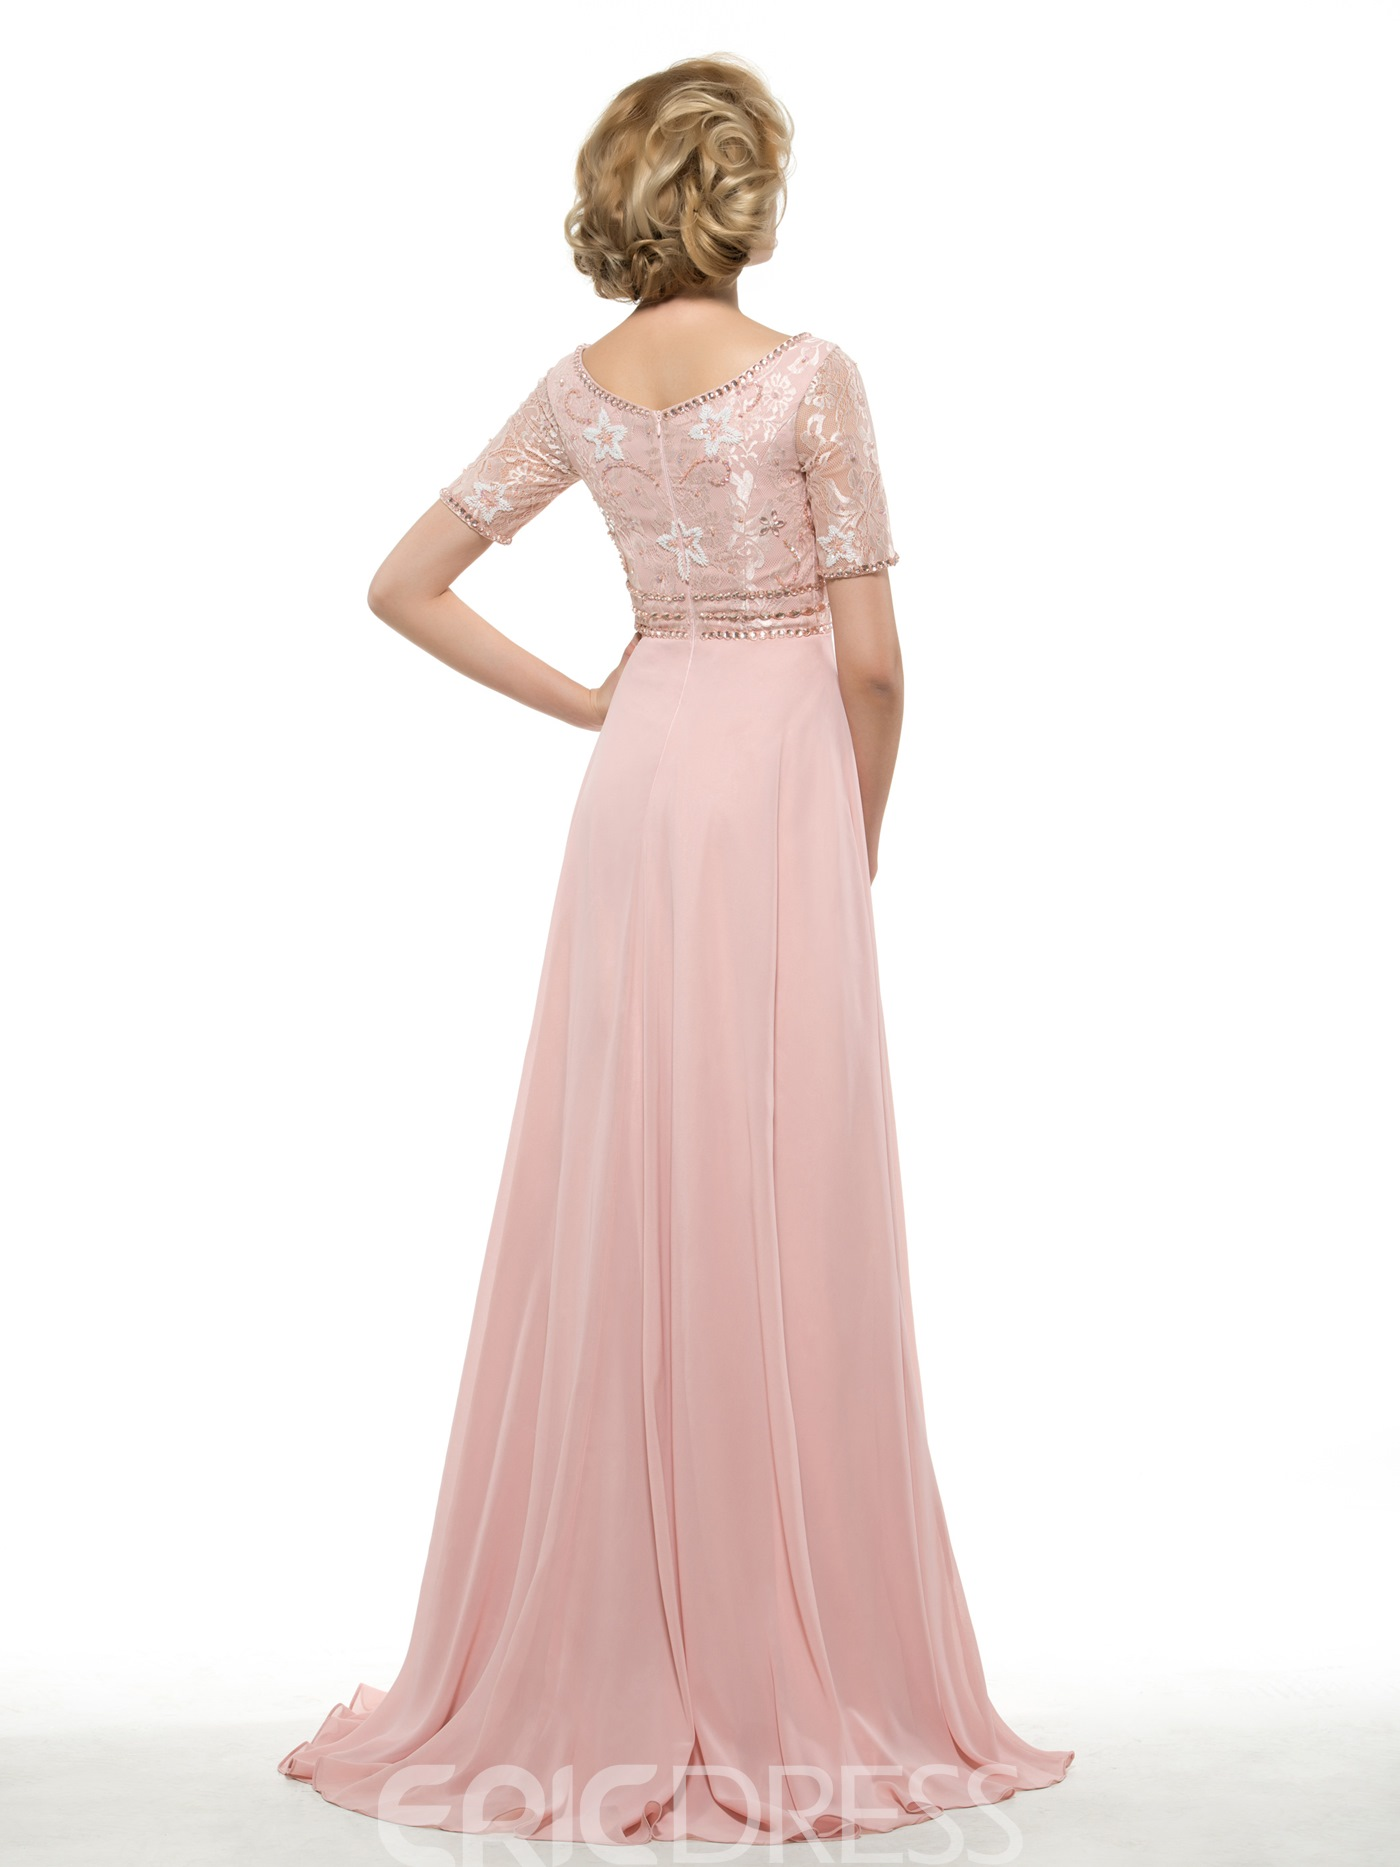 Ericdress Elegant A Line Lace Long Mother Of The Bride Dress